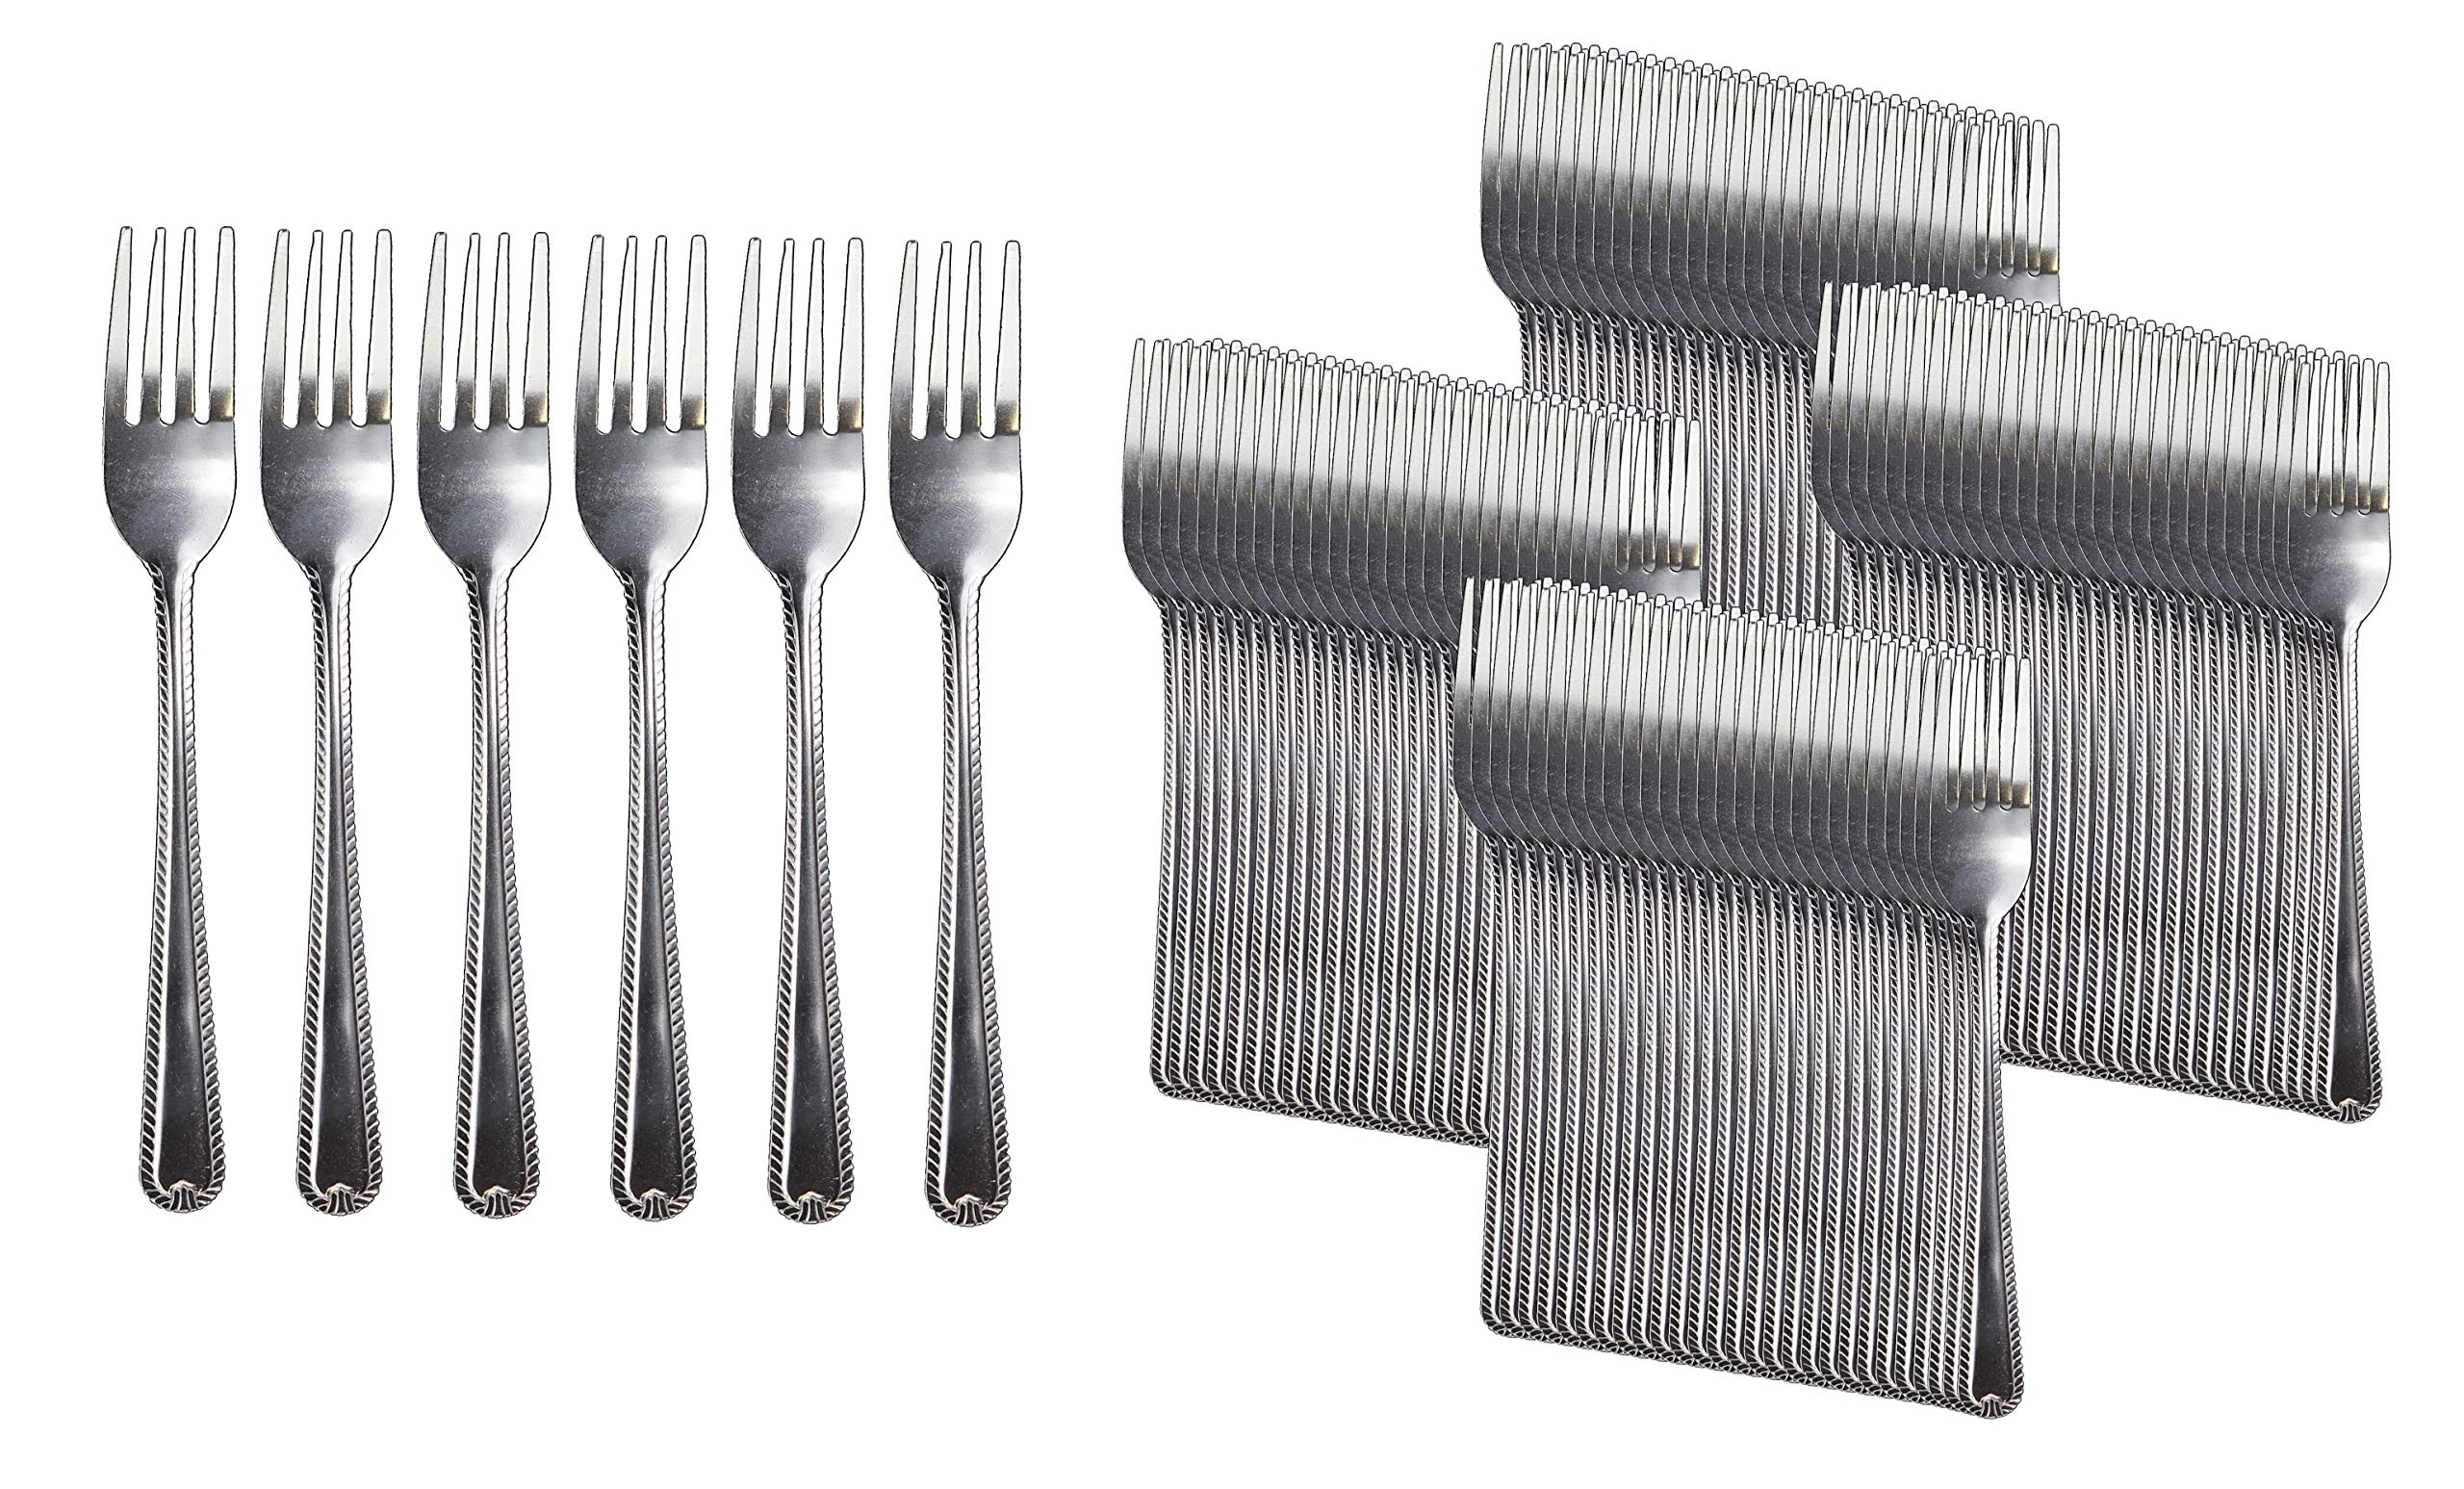 Handi-Ware Stainless Steel Cutlery - Multi-Pack Bulk - Tumble Finish - Commercial Use (120, Dinner Fork) by Handi-Ware (Image #1)